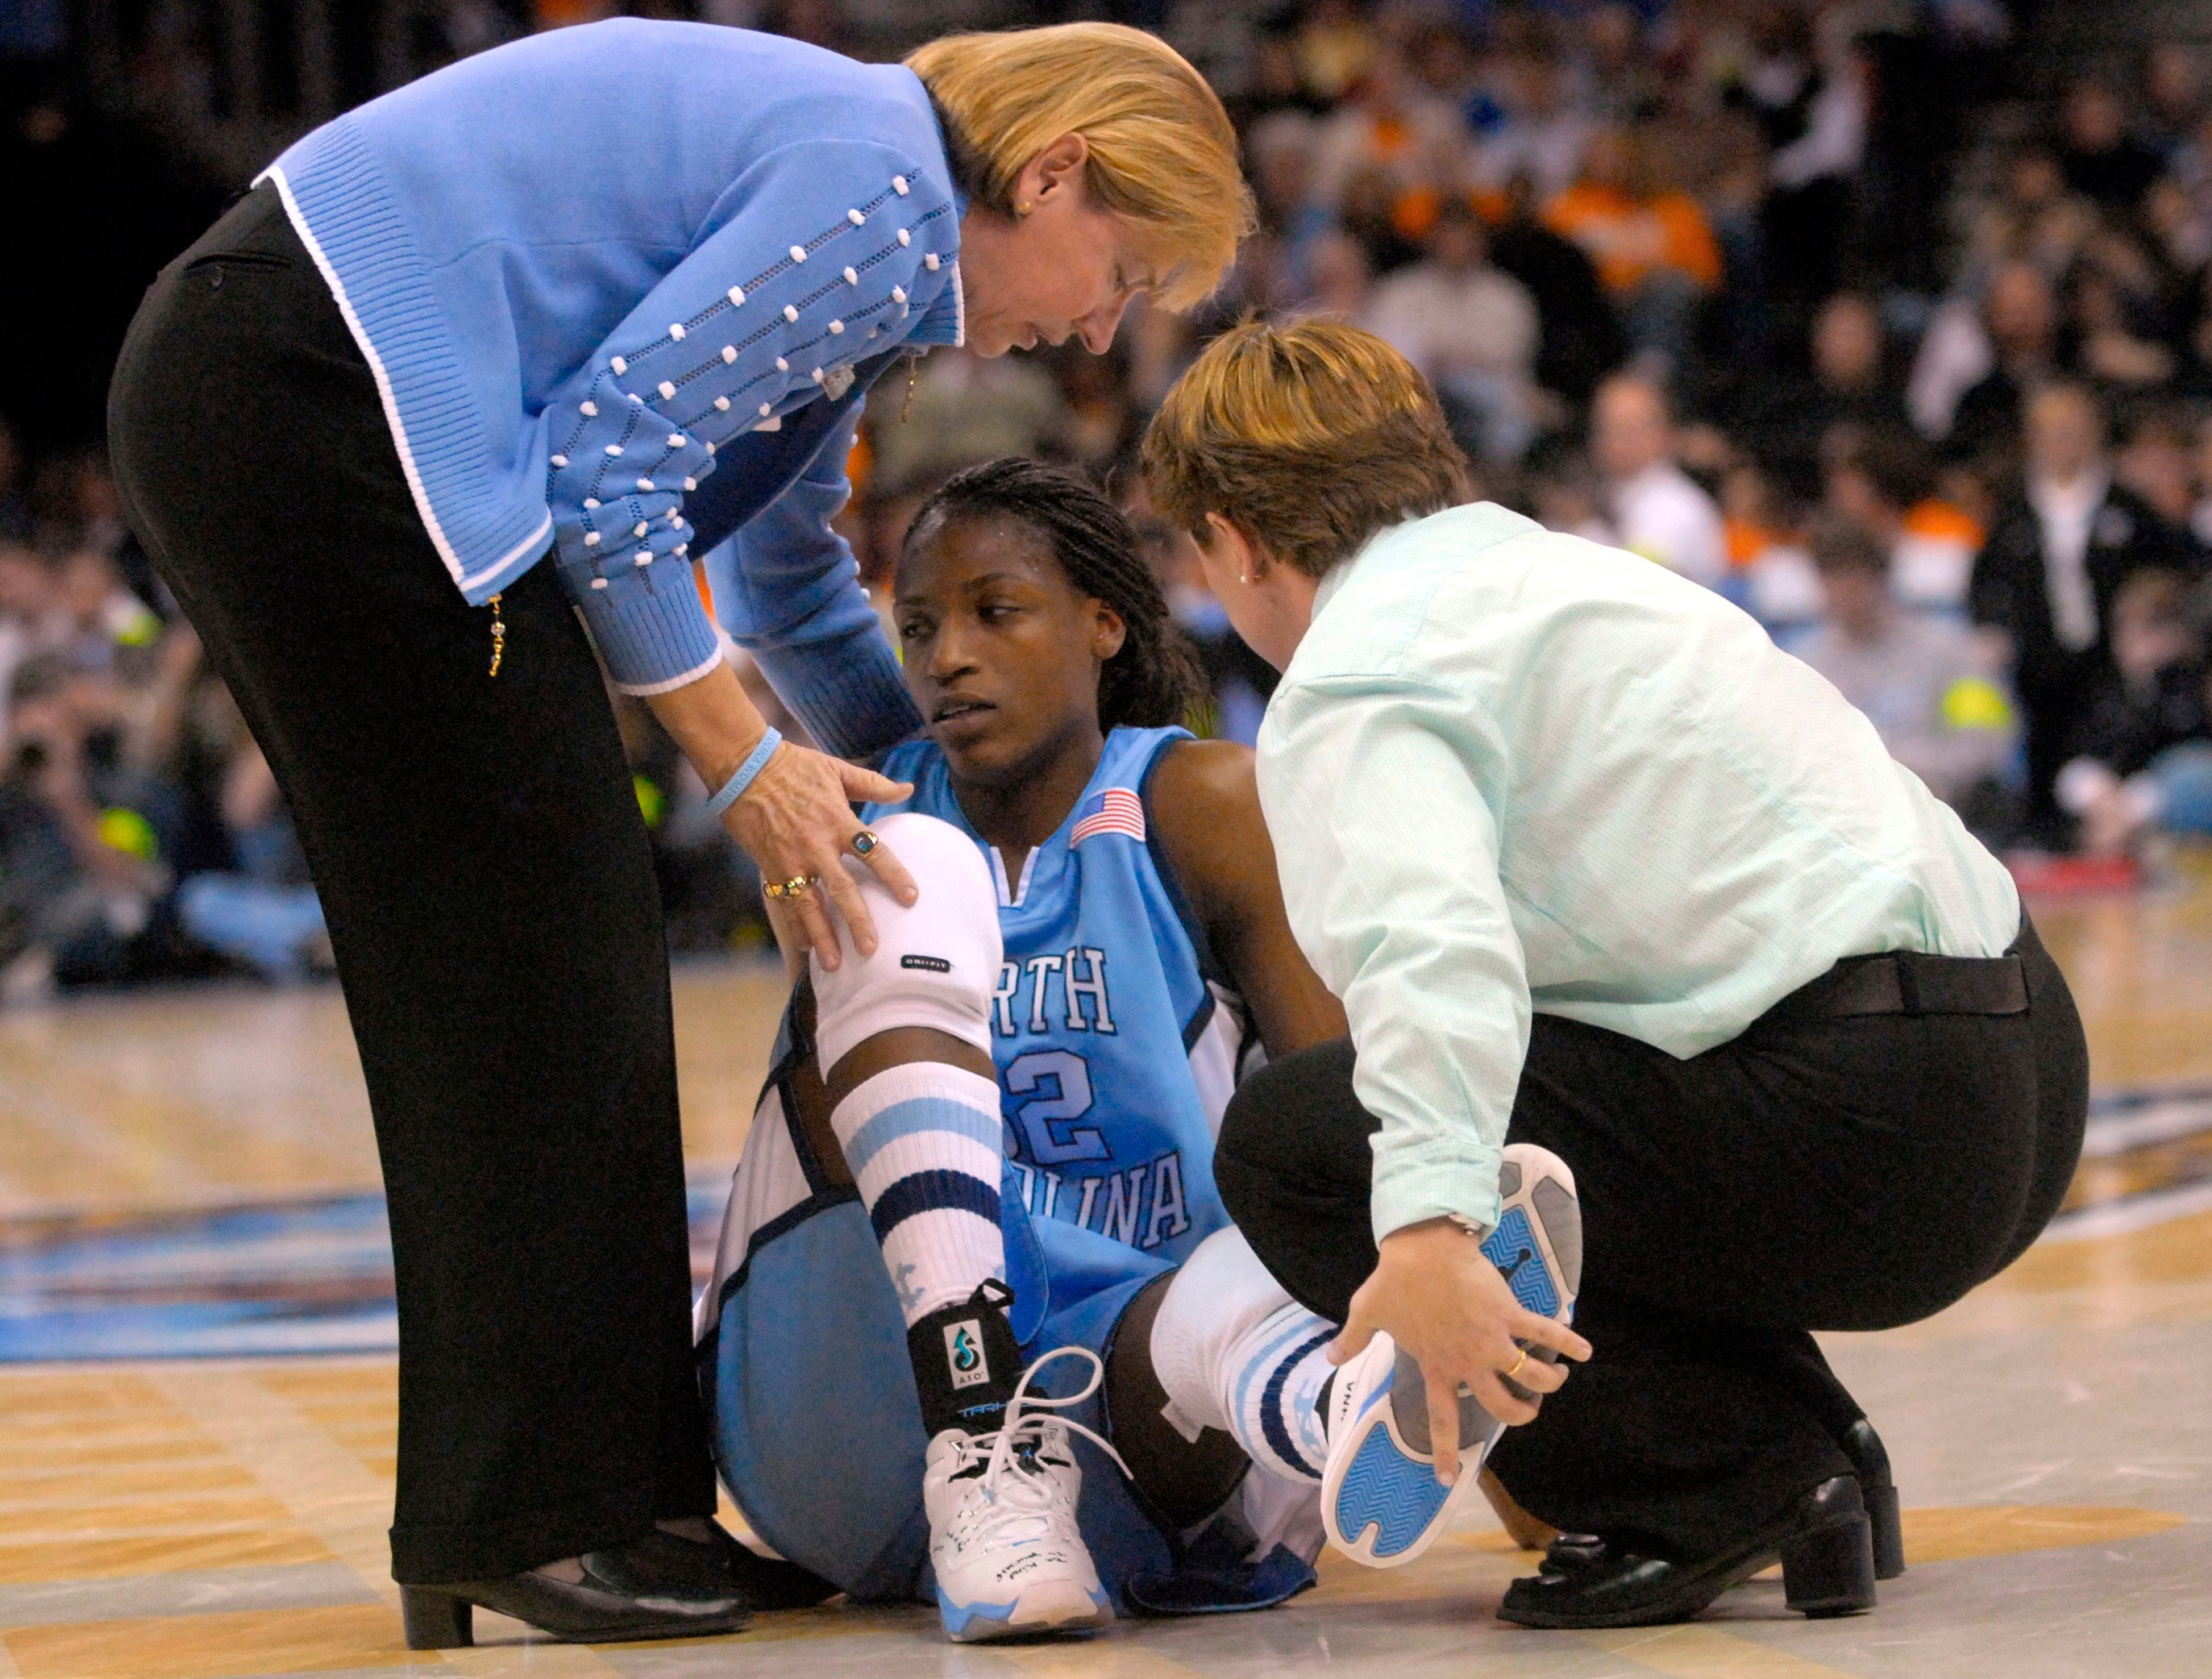 University North Carolina Tarheels' head coach Sylvia Hatchell (L) helps Rashanda McCants (C) up during the second half of their NCAA women's semi-final basketball game against the University of Tennessee Lady Volunteers in Cleveland, Ohio, April 1, 2007. REUTERS/John Sommers II